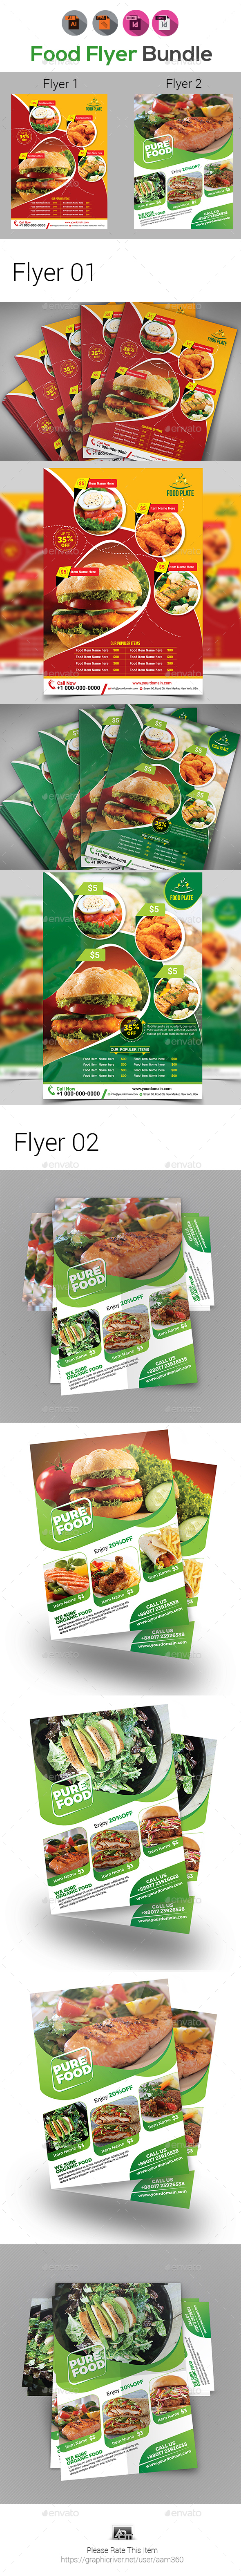 Food Flyers Bundle Templates - Restaurant Flyers